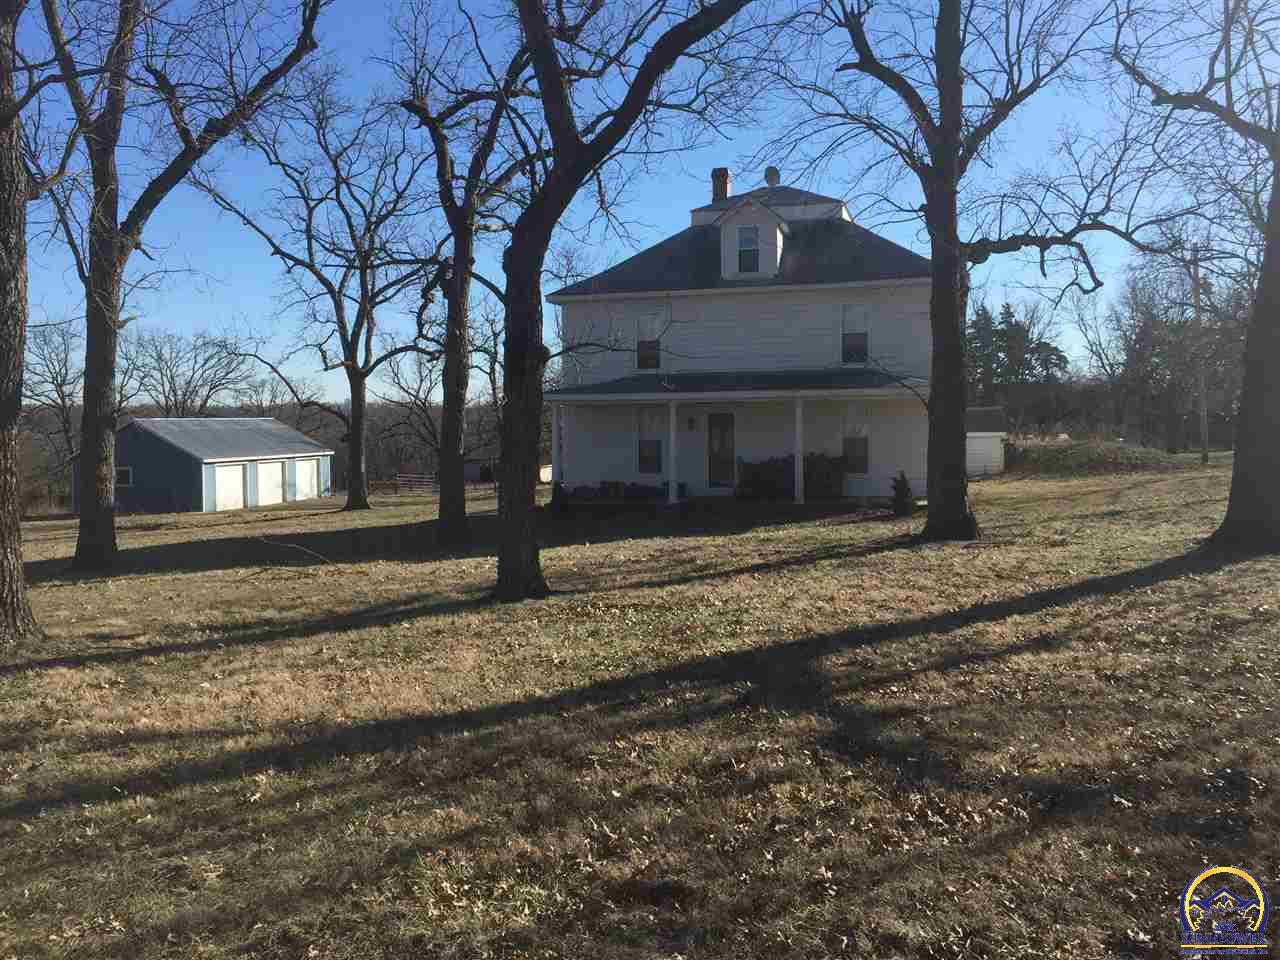 Photo of 7921 W 1350 Rd Centerville KS 66014